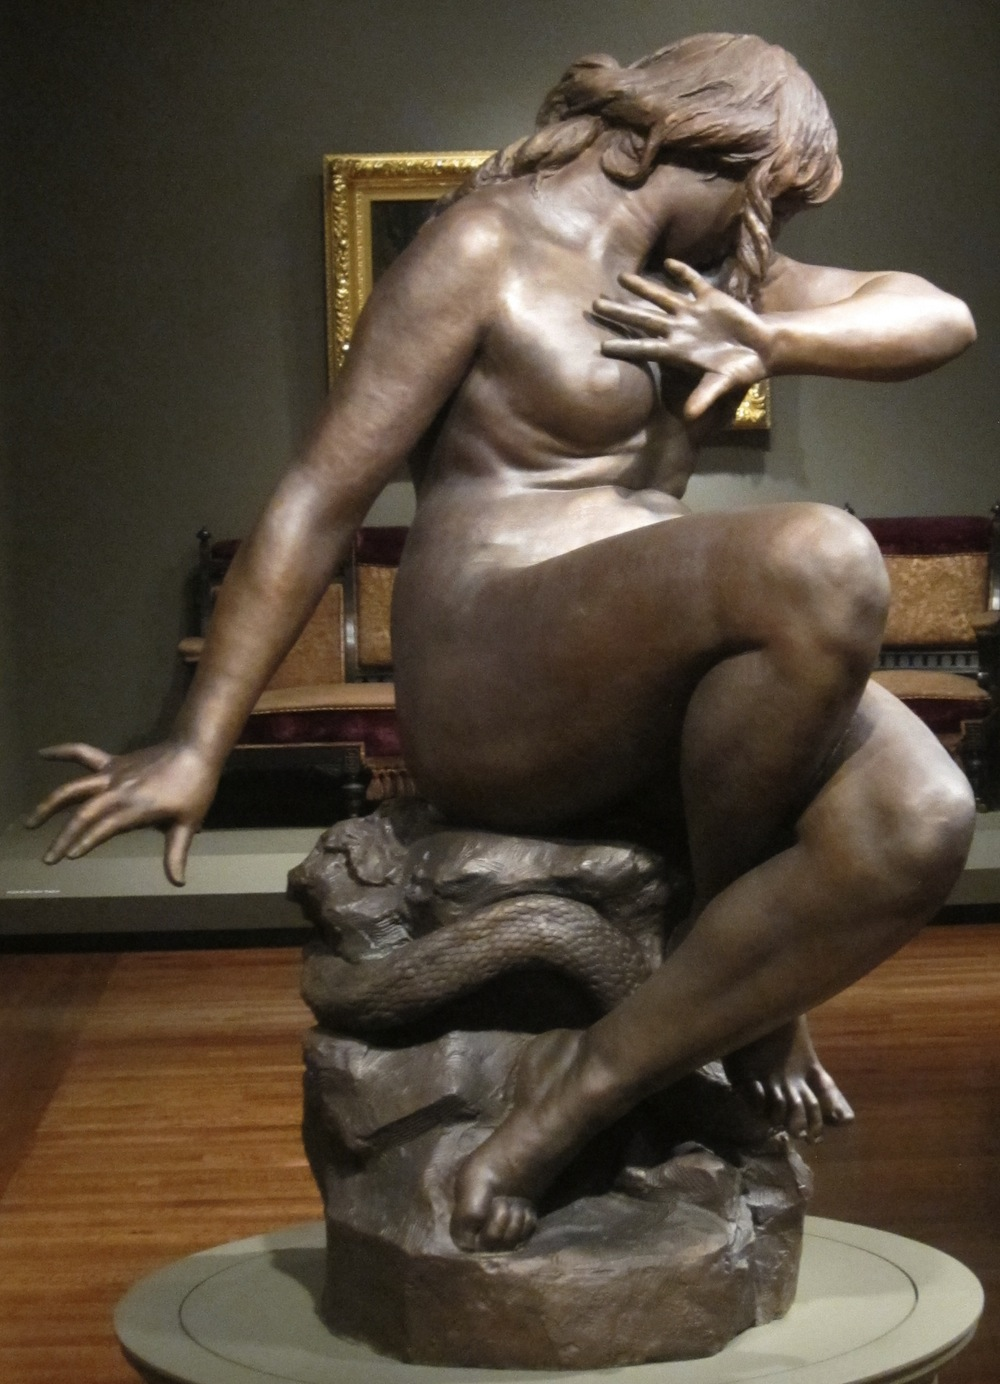 'Eve Hearing the Voice' by Moses Jacob Ezekiel, at Cincinnati Art Museum. Courtesy of Wikimedia Commons.